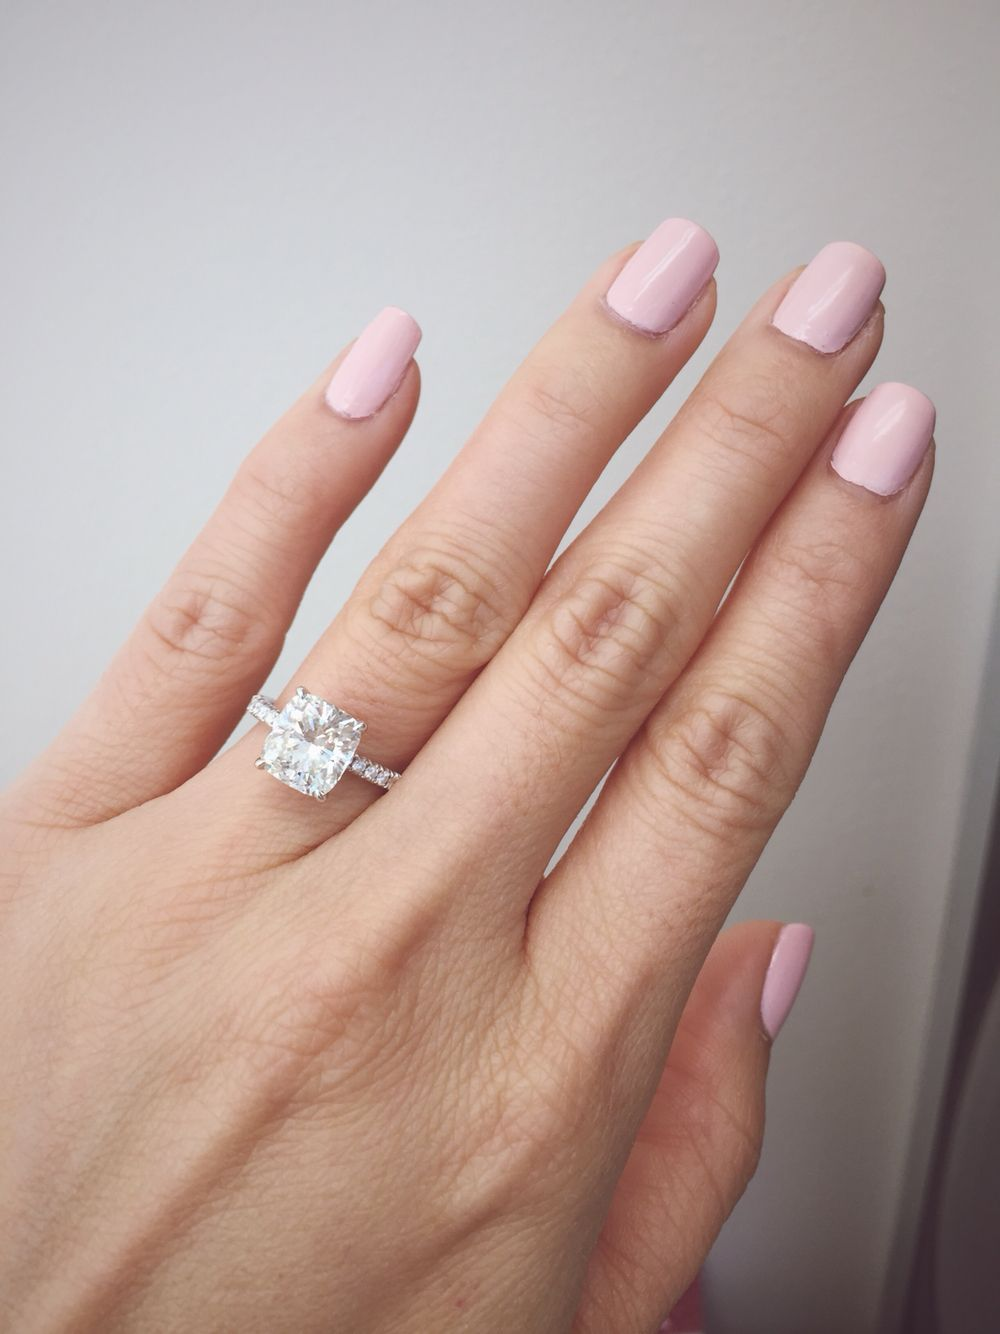 Find This Pin And More On Engagement Rings 2 Carat Elongated Cushion Cut